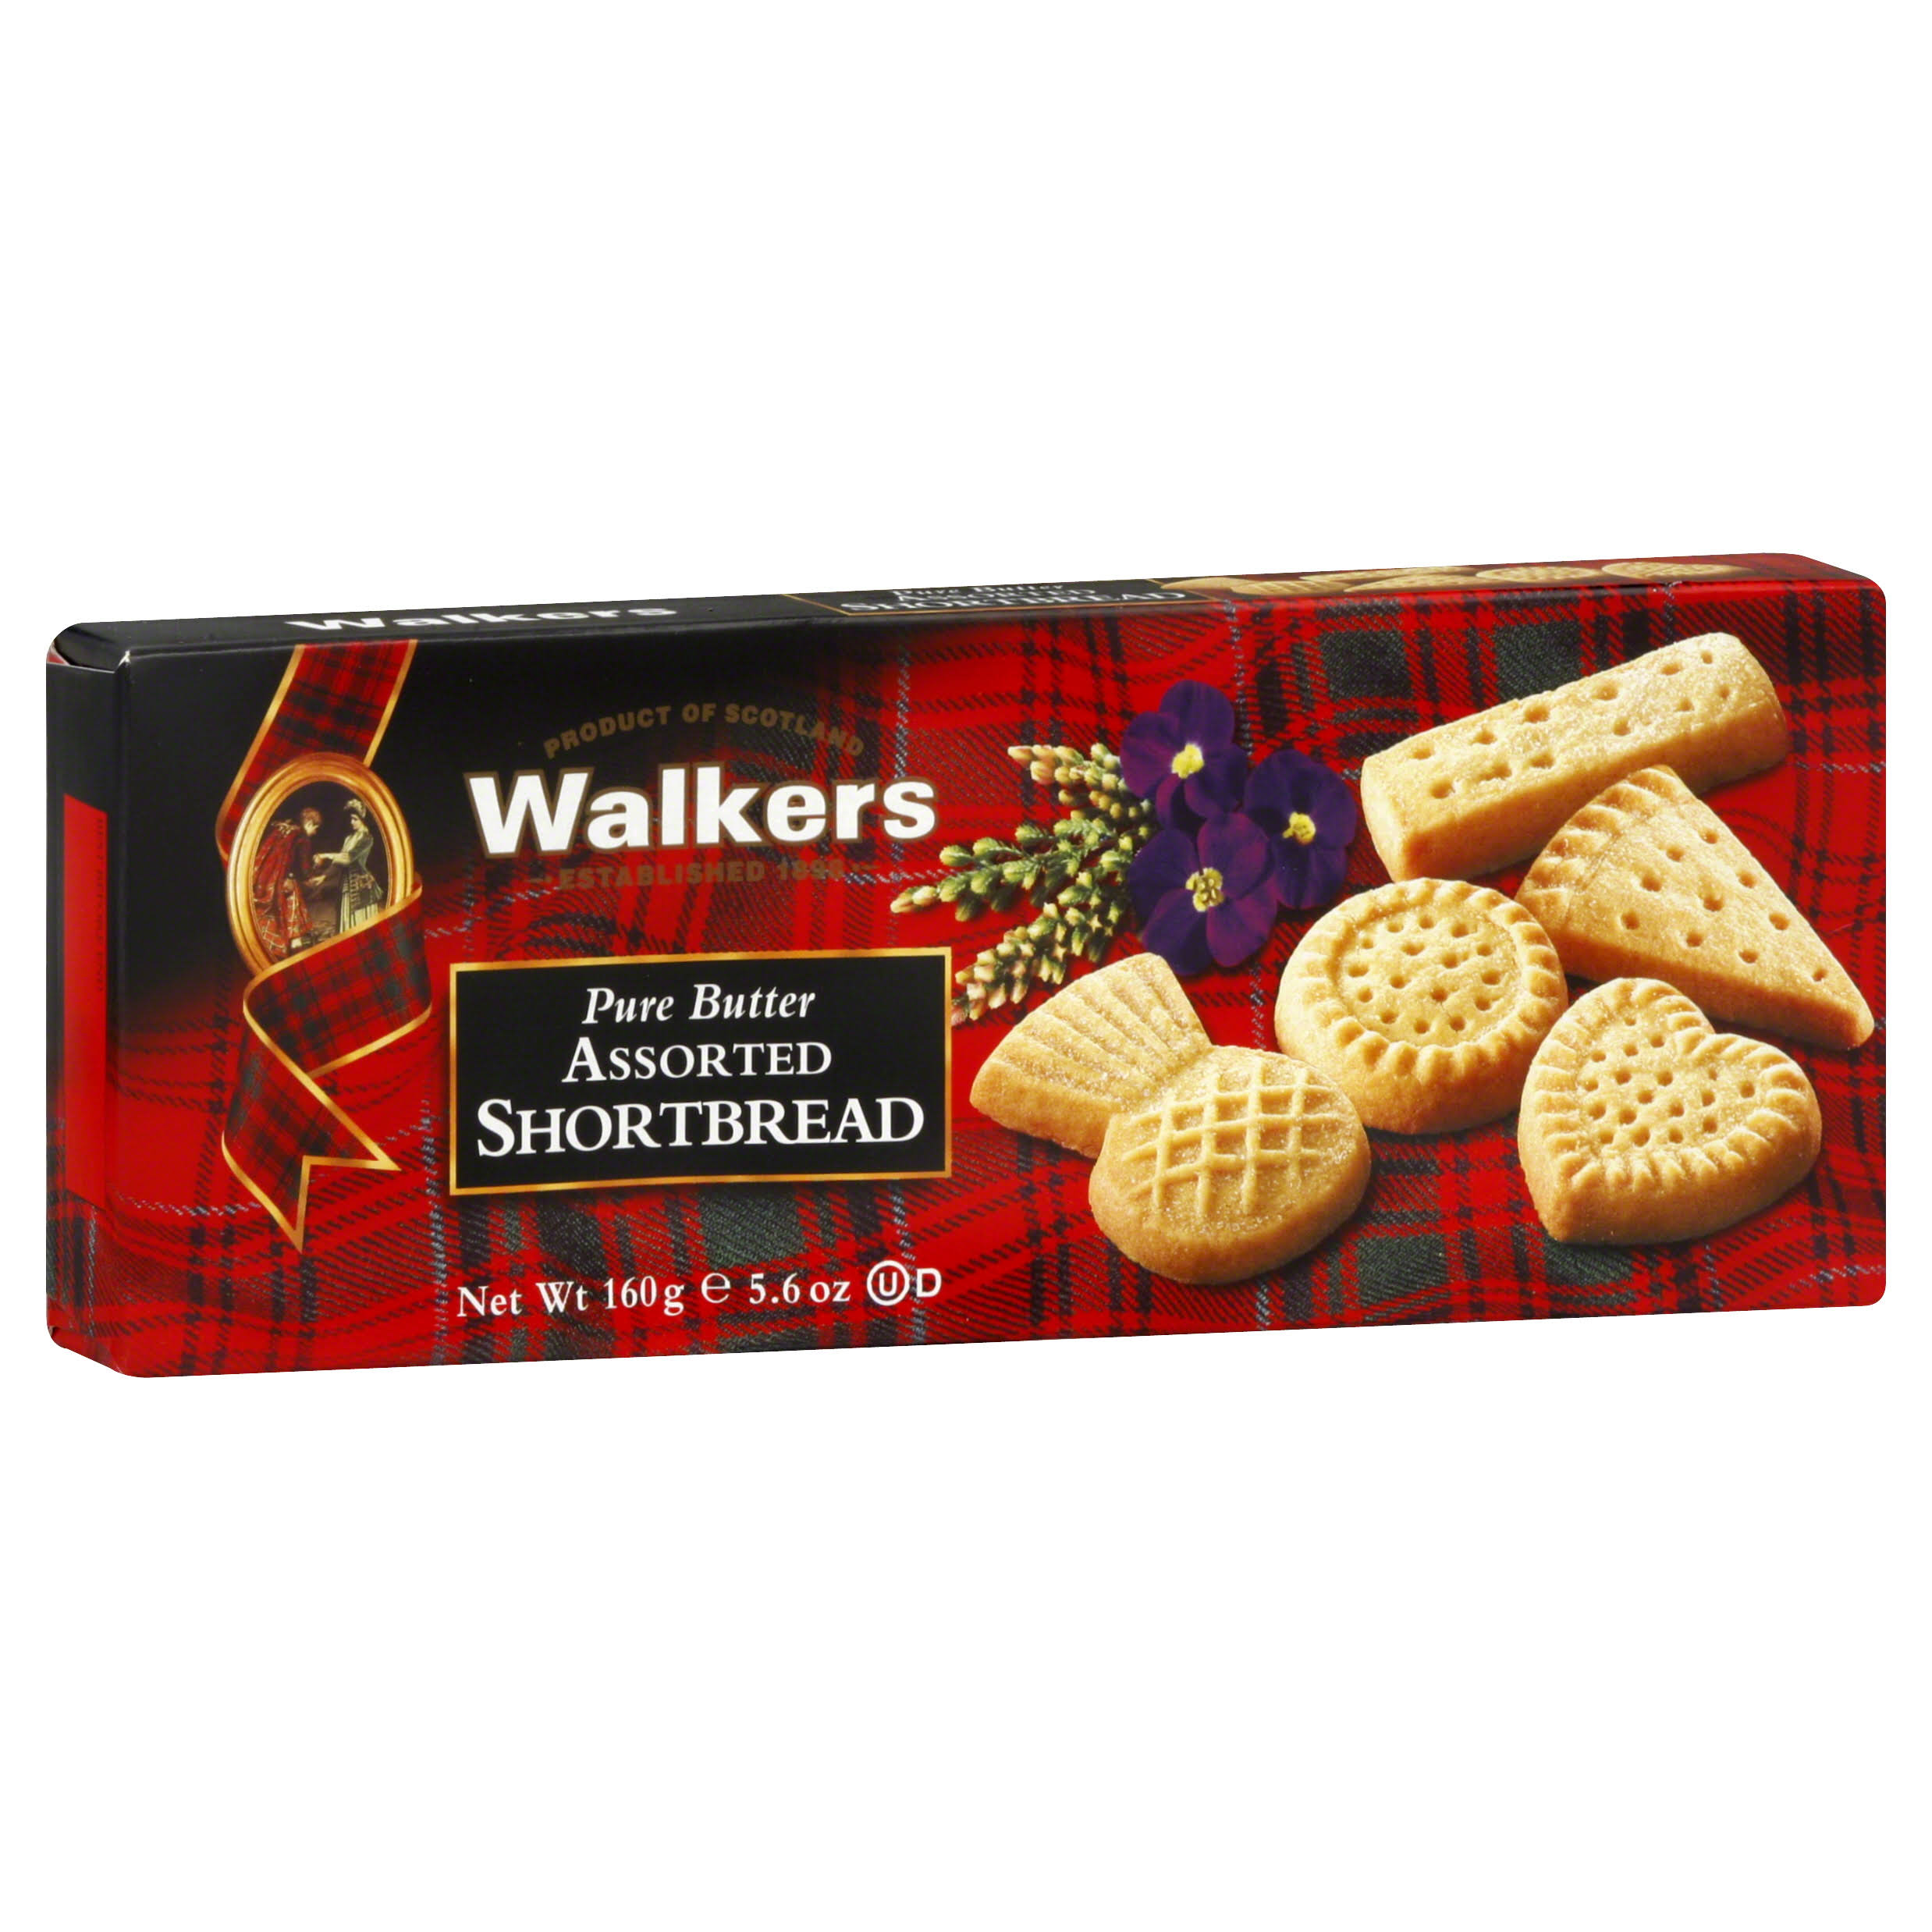 Walkers Pure Butter Shortbread - Assorted, 5.6oz